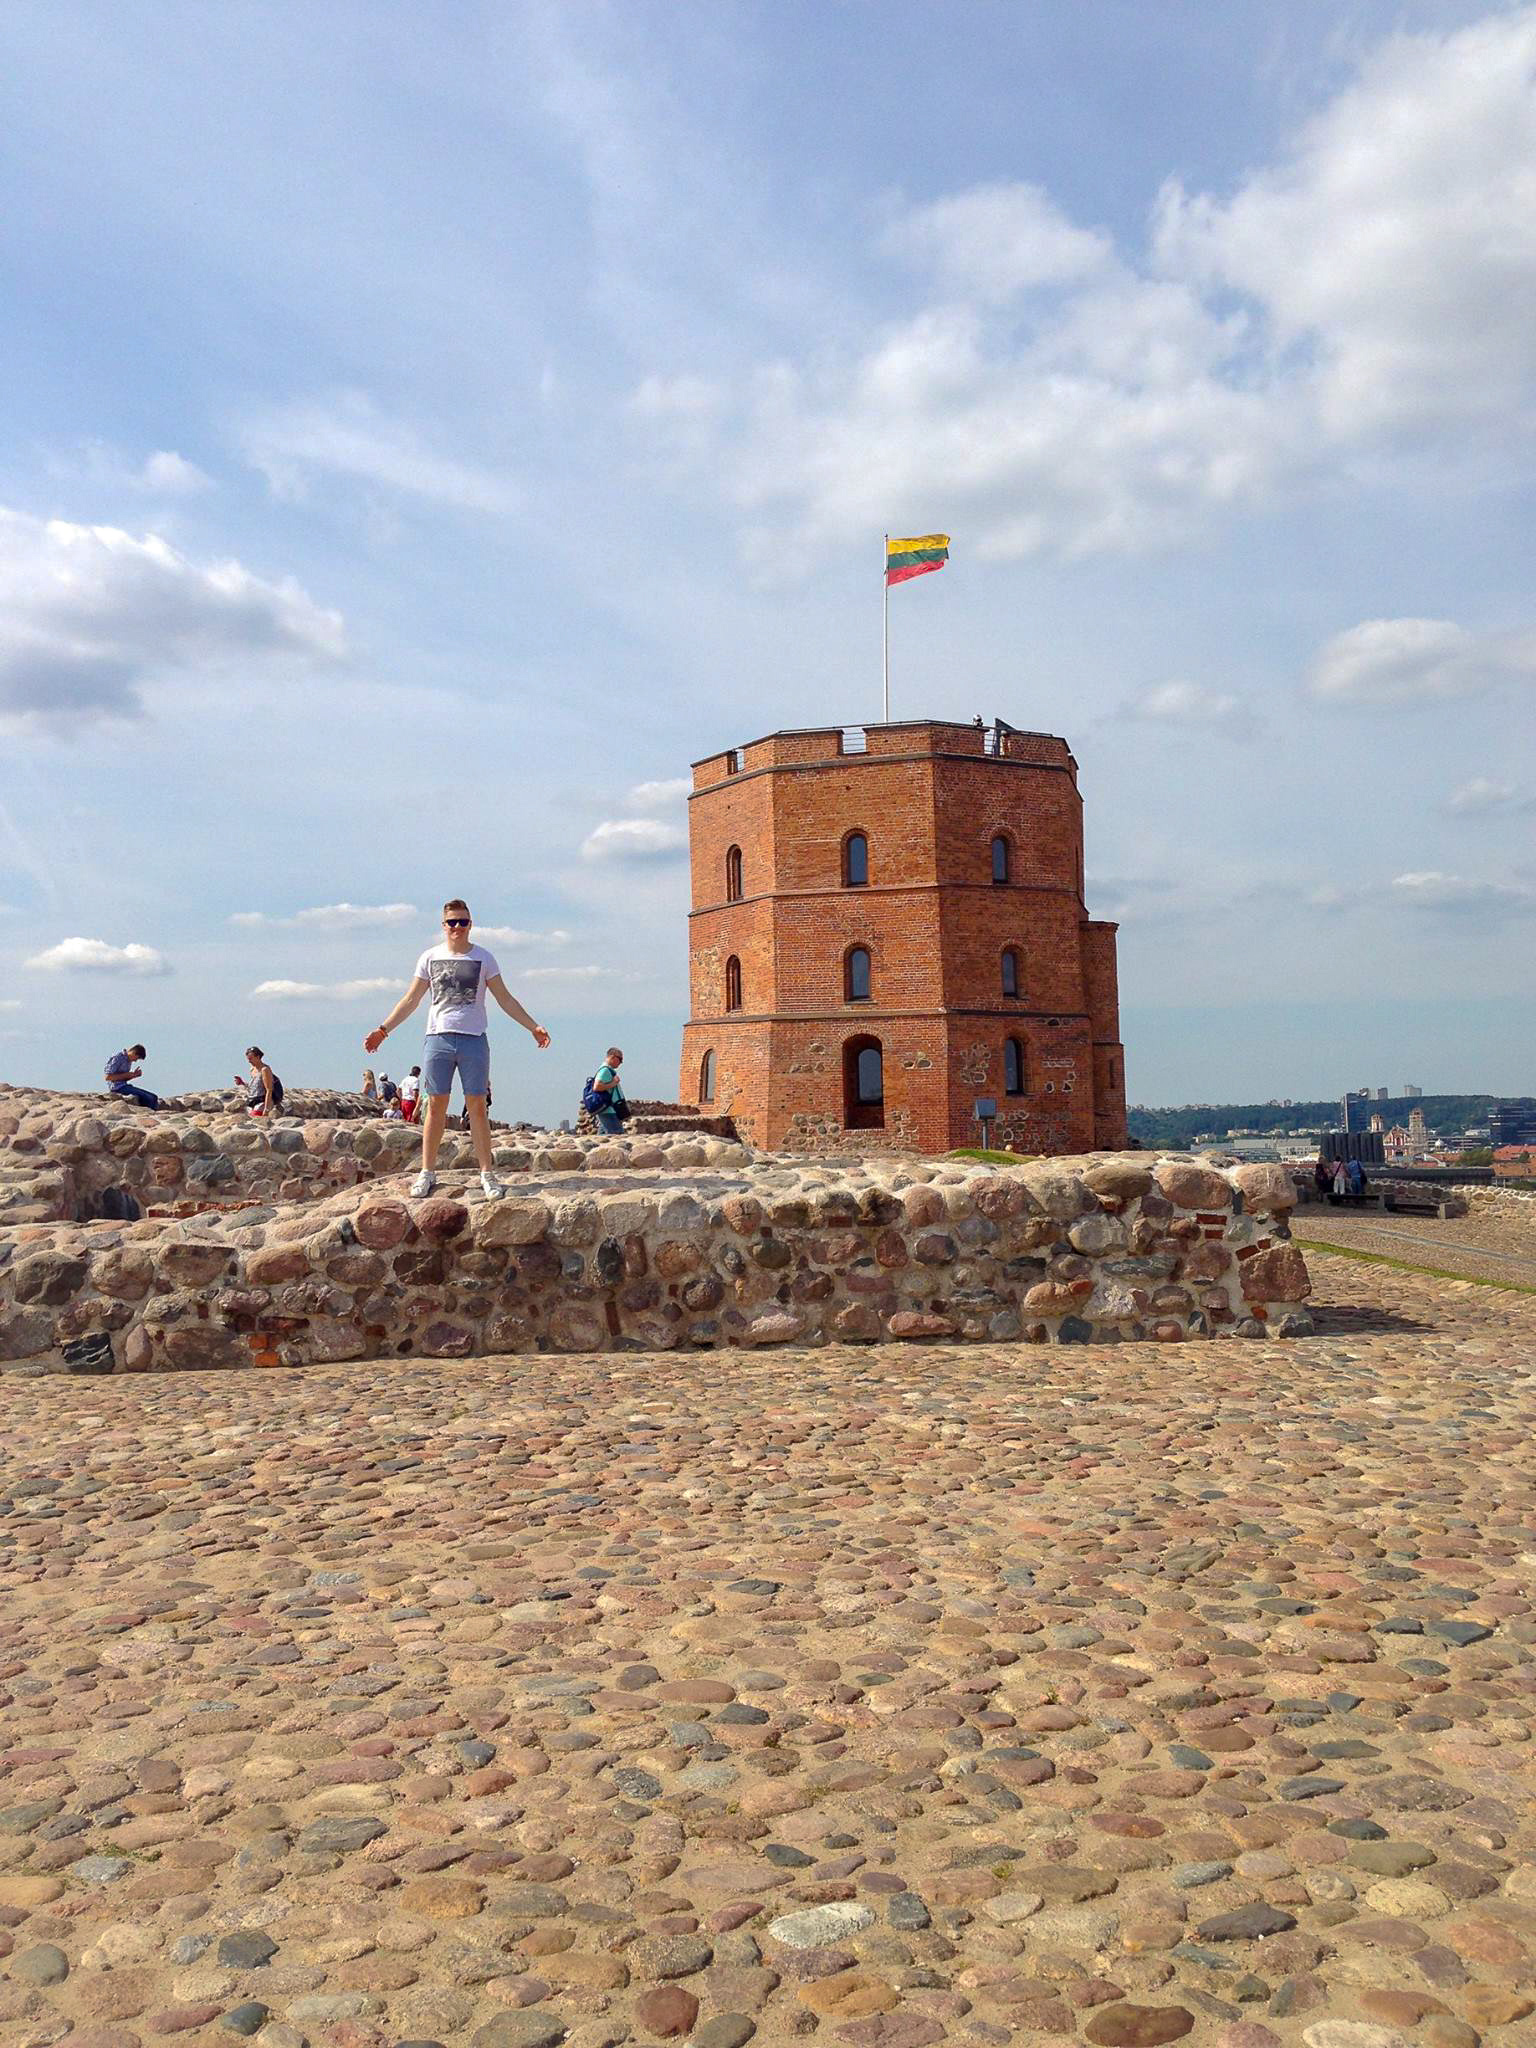 The first image I used on a blog post on this website was of me atop Castle Hill with Gediminas' Tower in the background.